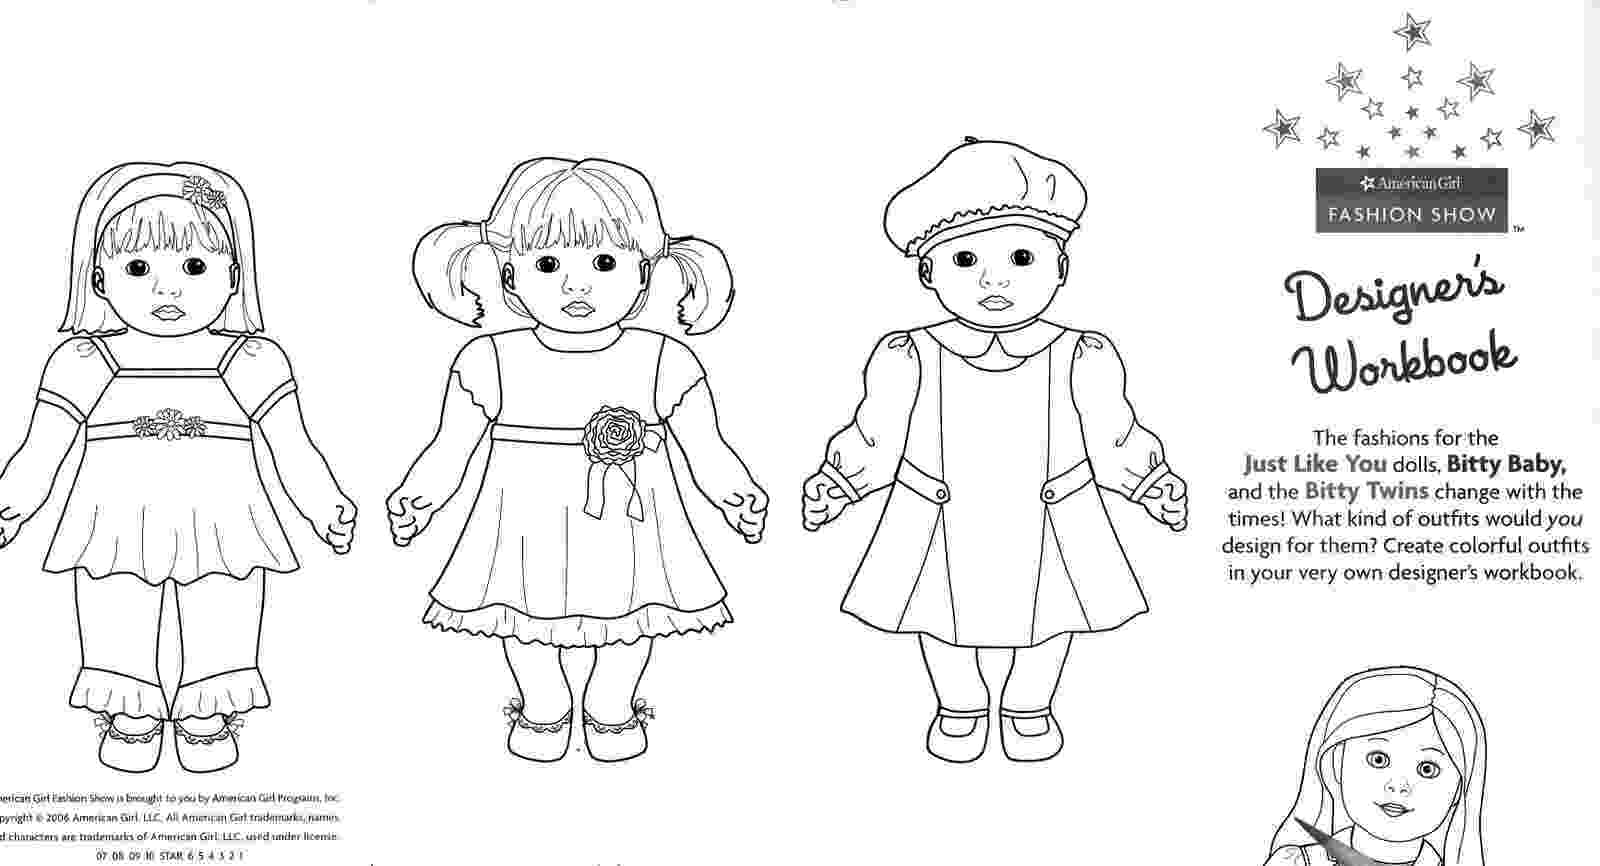 free printable american girl doll coloring pages american girl coloring pages kit at getcoloringscom american free coloring printable pages girl doll